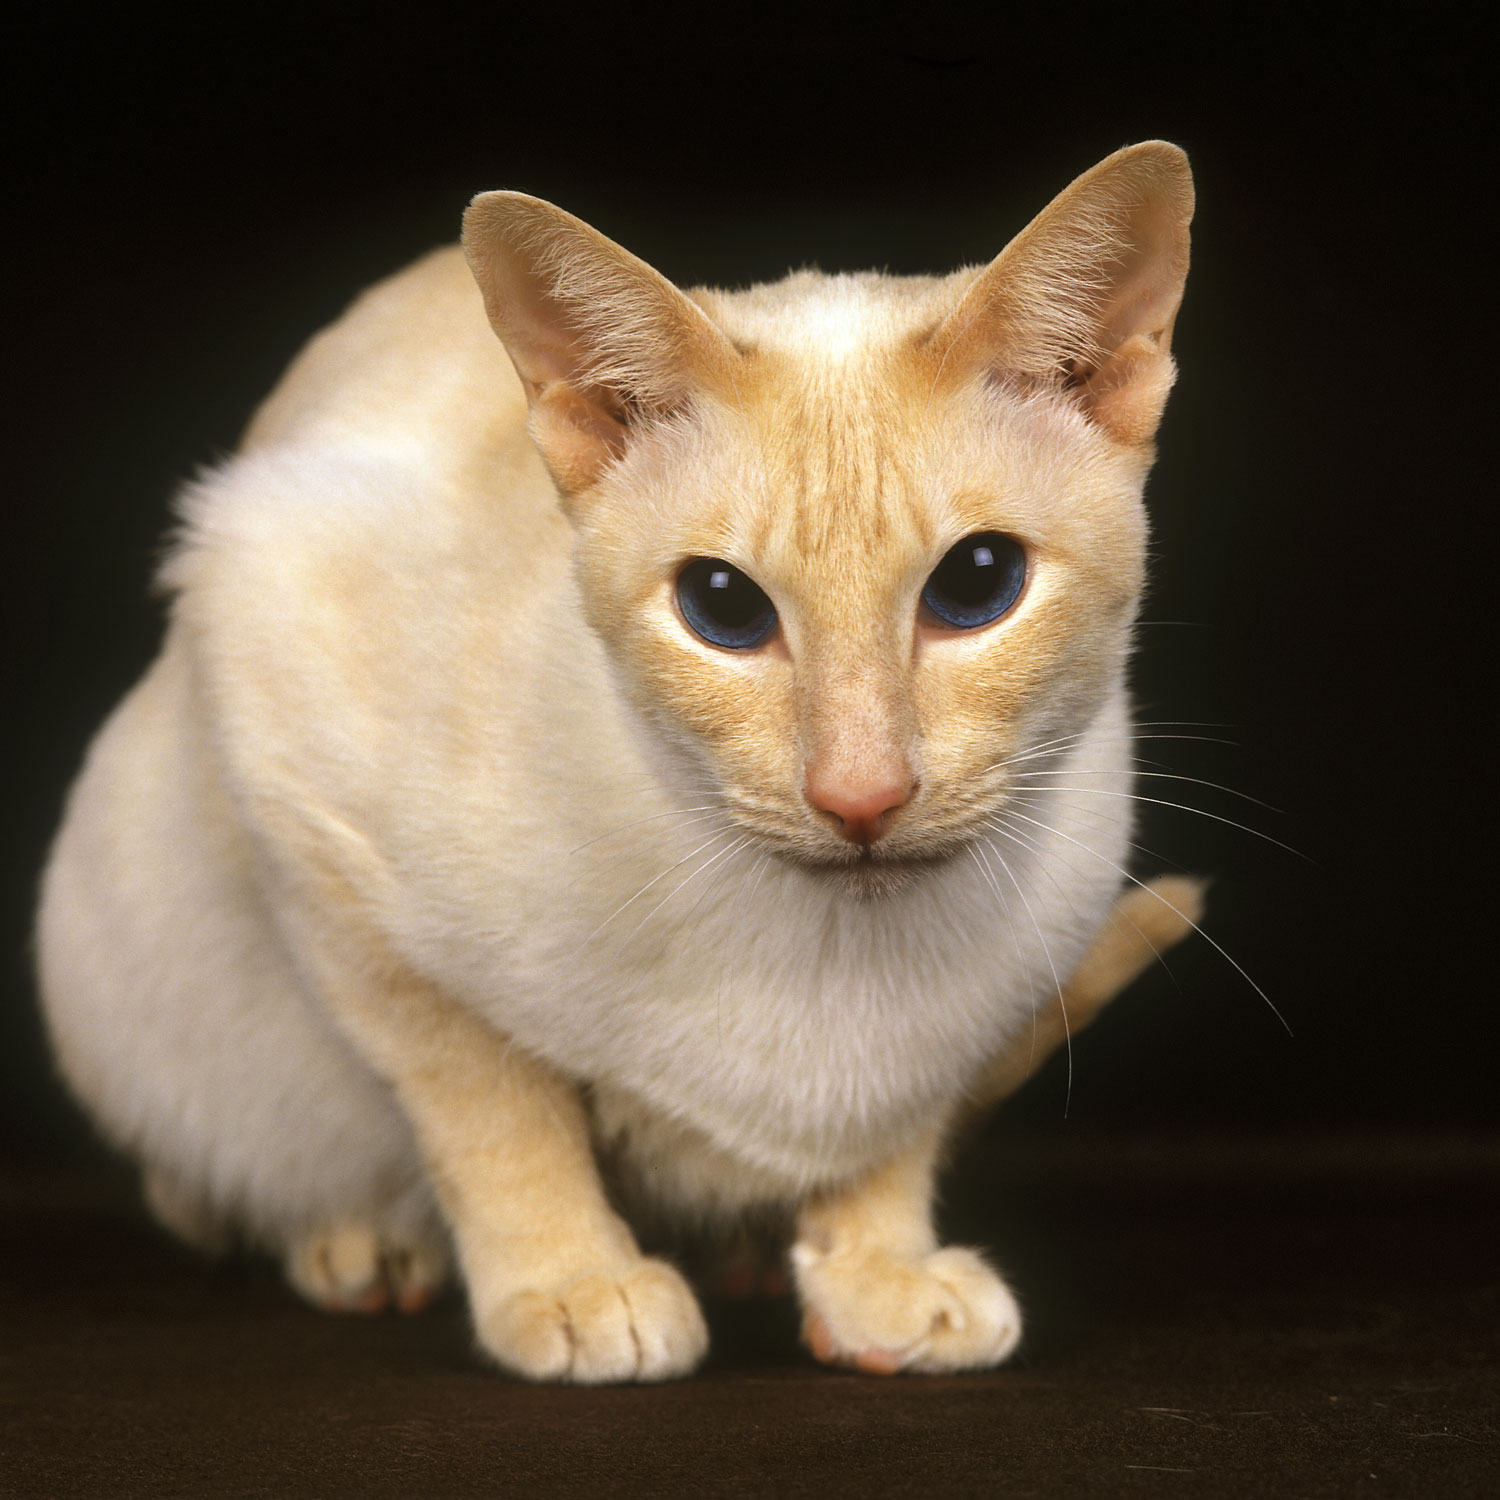 A red point Siamese cat looking at the camera photographed on a dark background